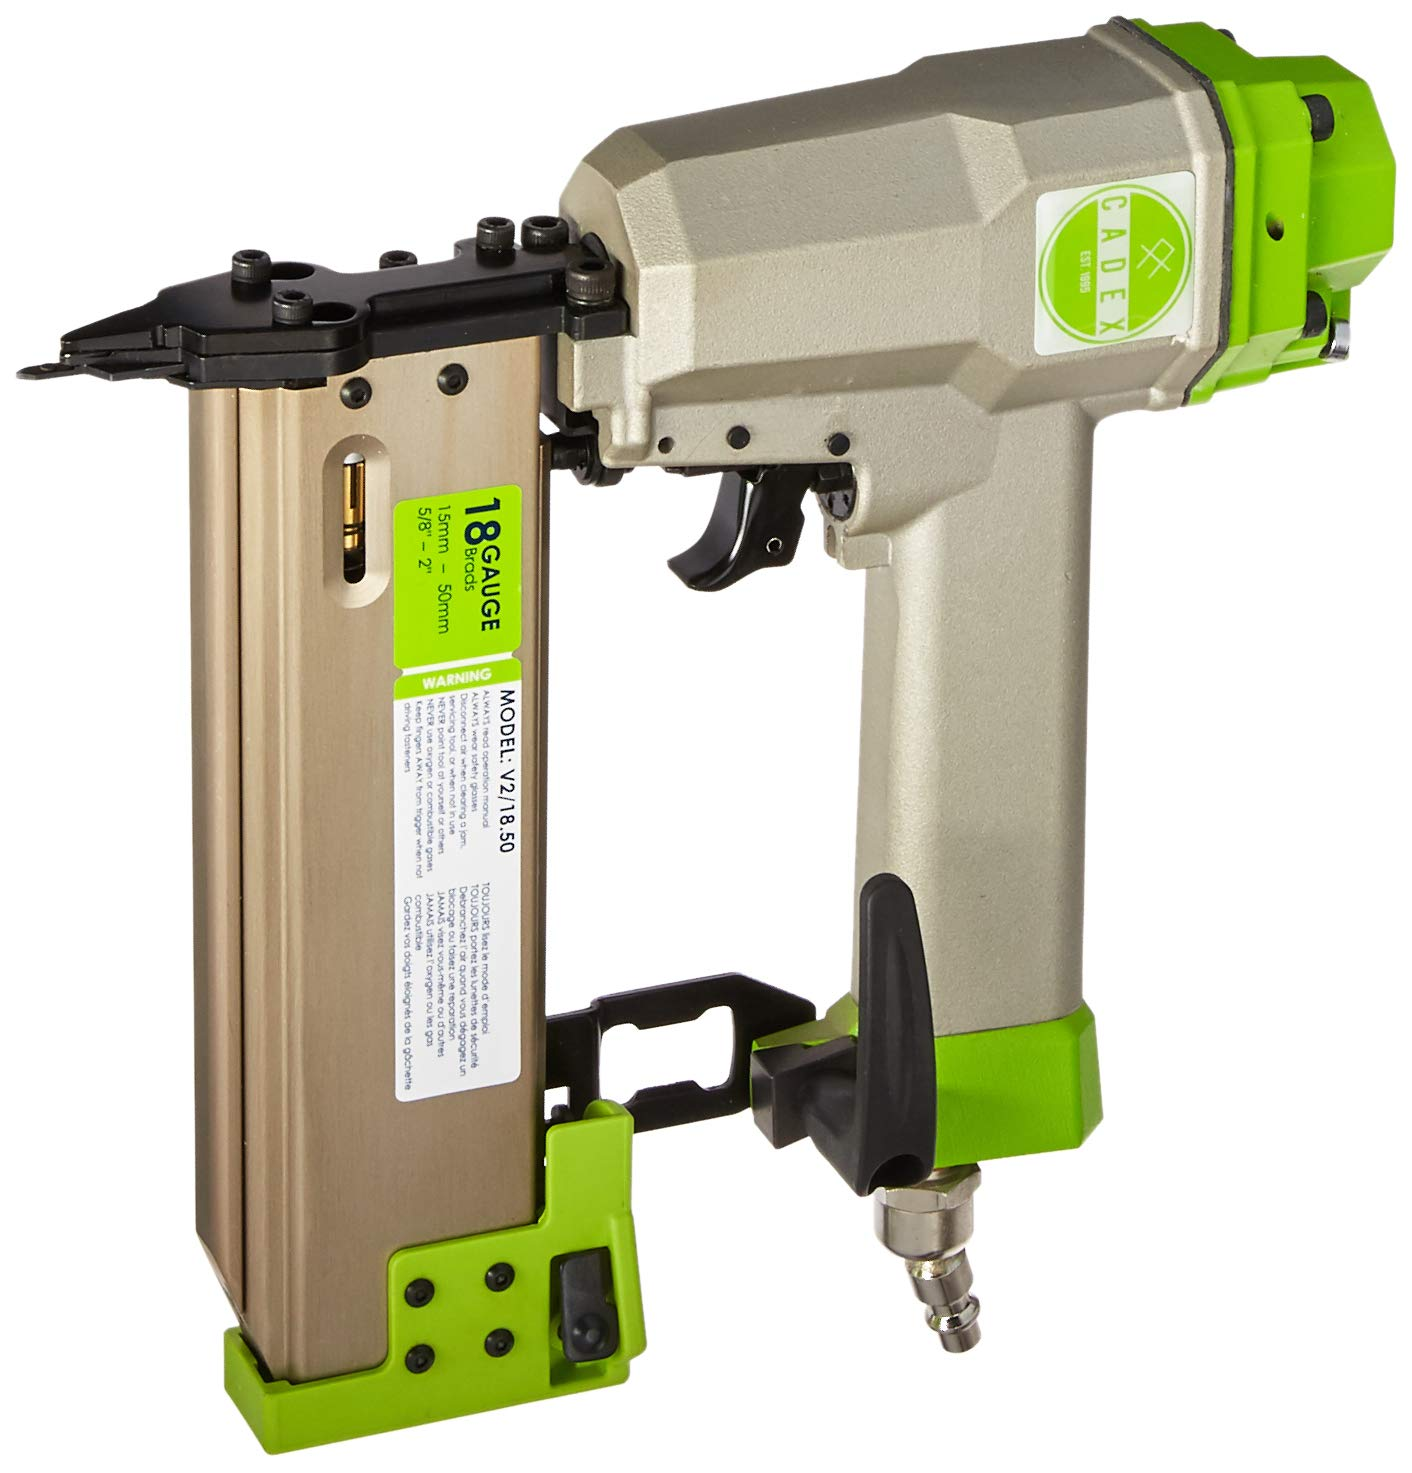 Cadex V2 18.50 18 Gauge Brad Nailer, 5 8 - 2